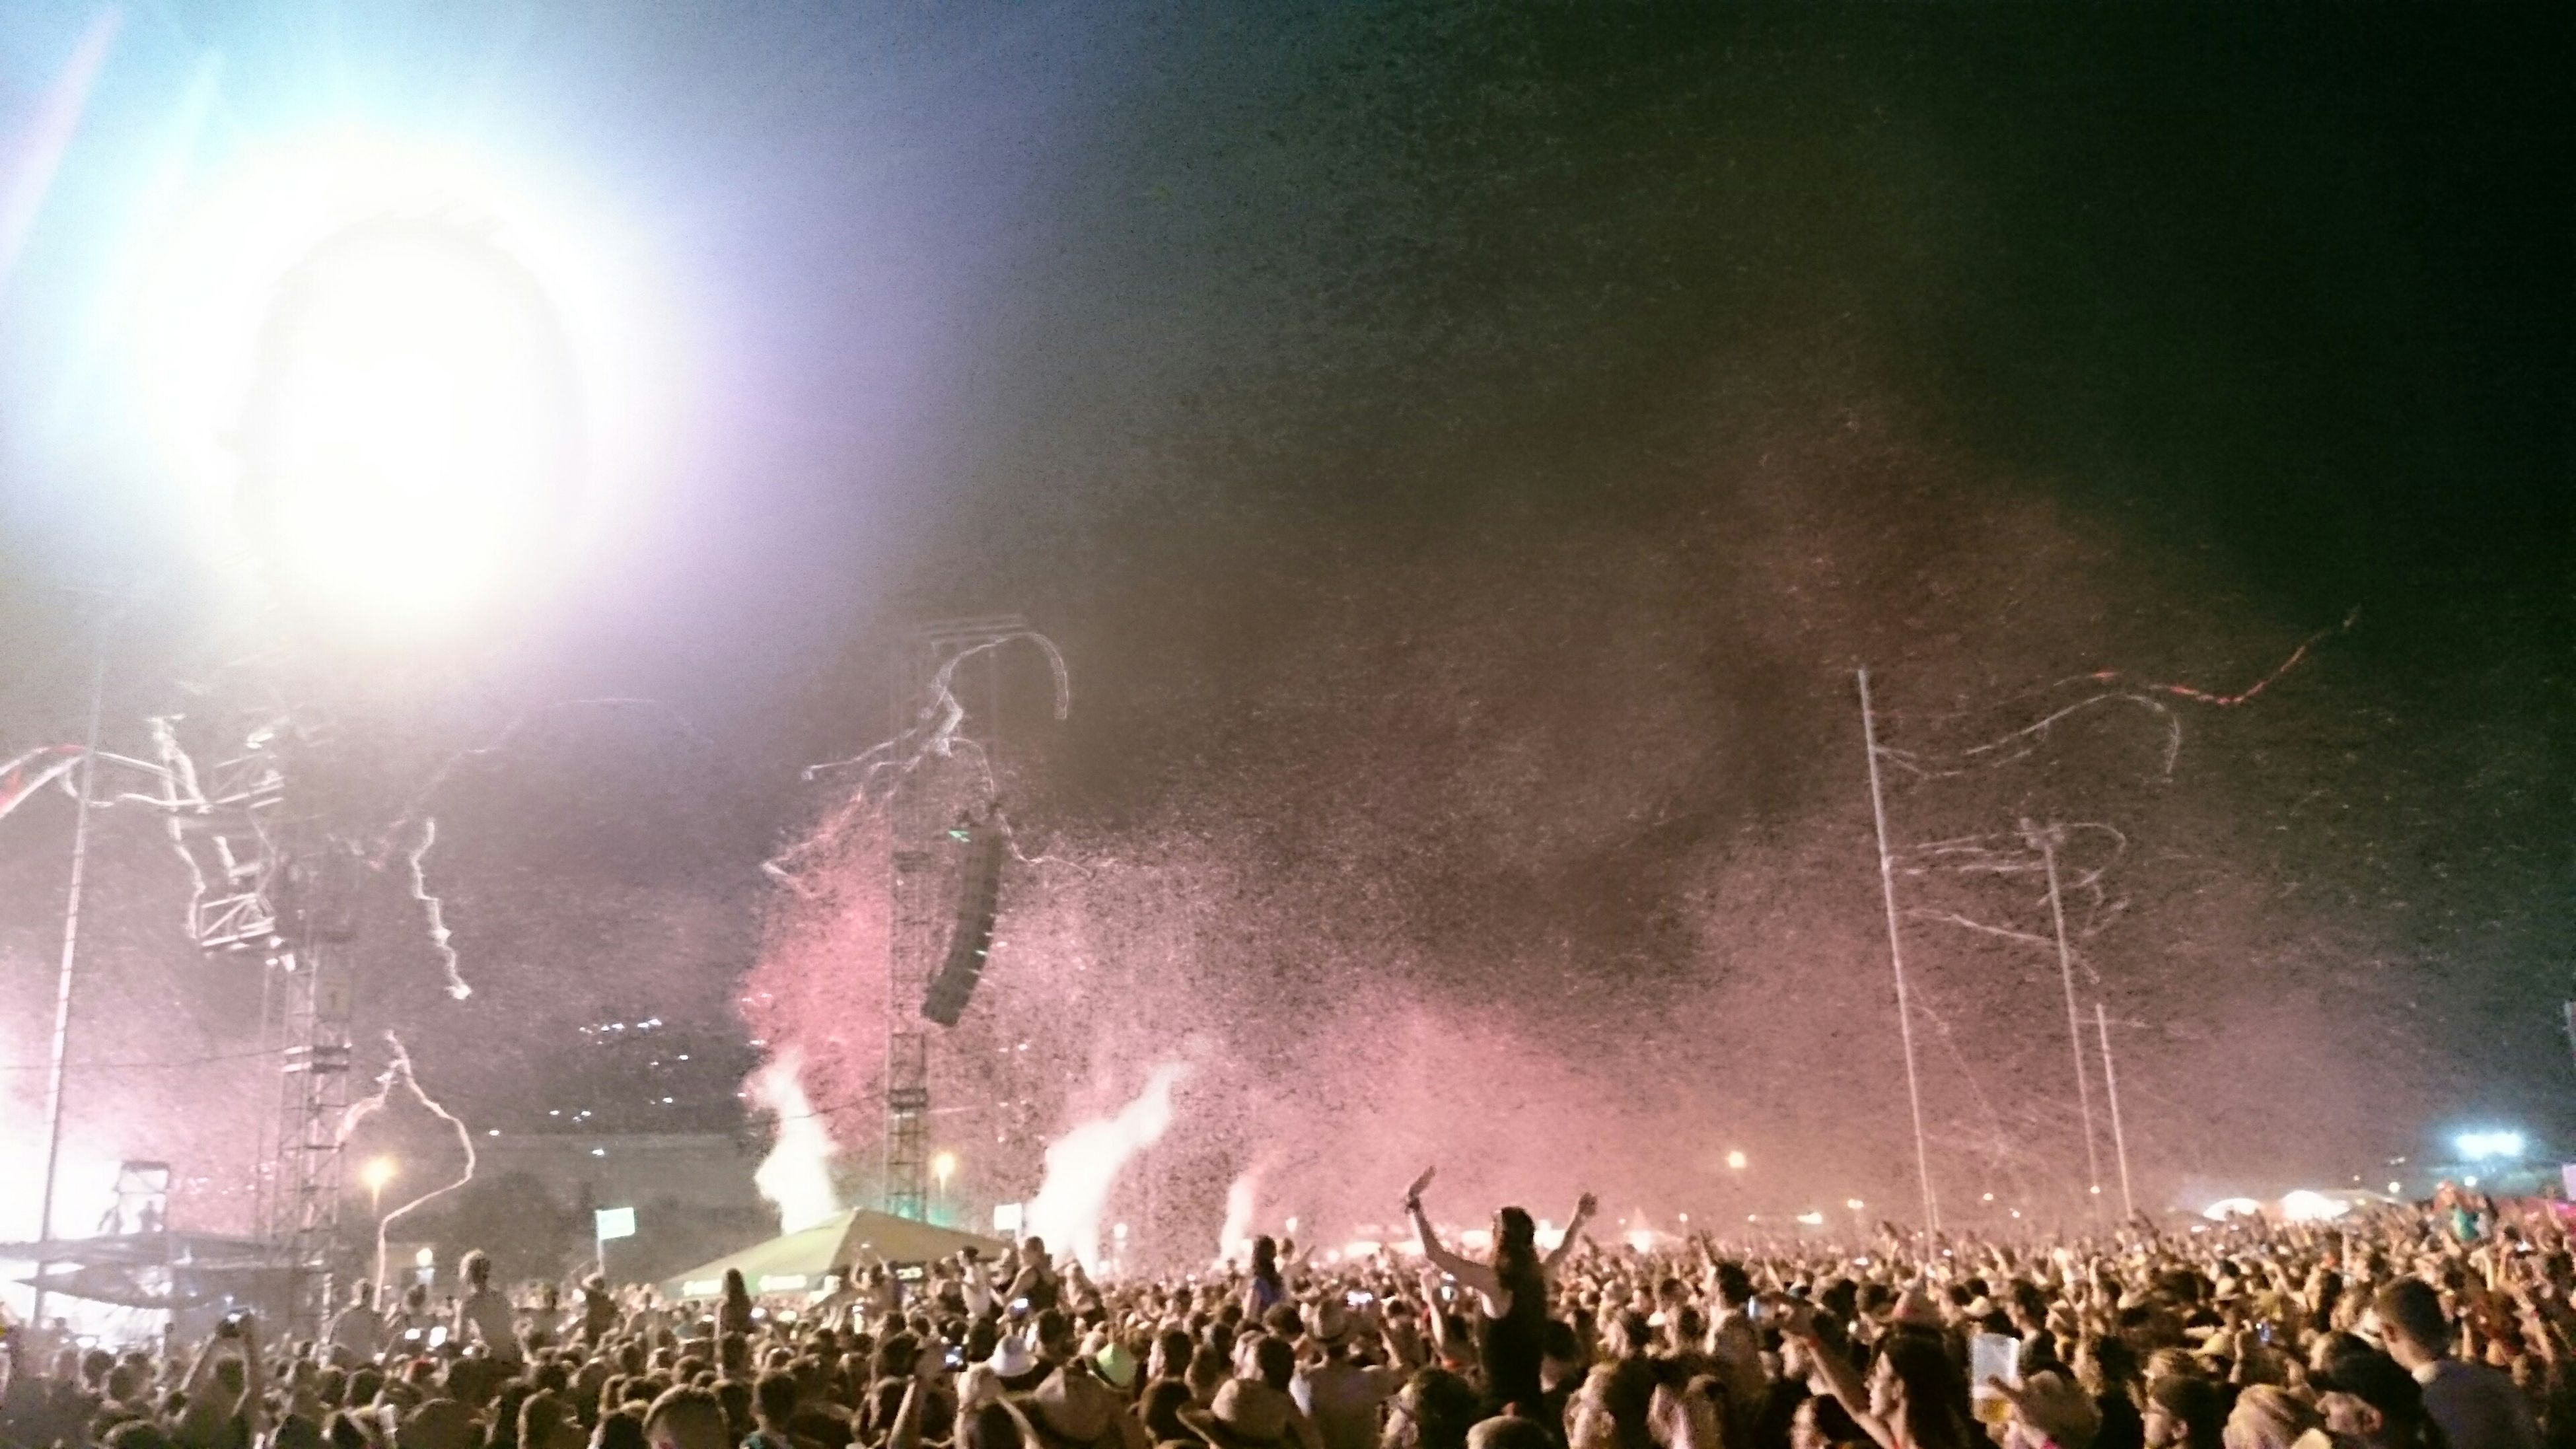 large group of people, crowd, illuminated, arts culture and entertainment, night, person, event, music, lifestyles, performance, men, music festival, enjoyment, popular music concert, leisure activity, nightlife, celebration, stage - performance space, concert